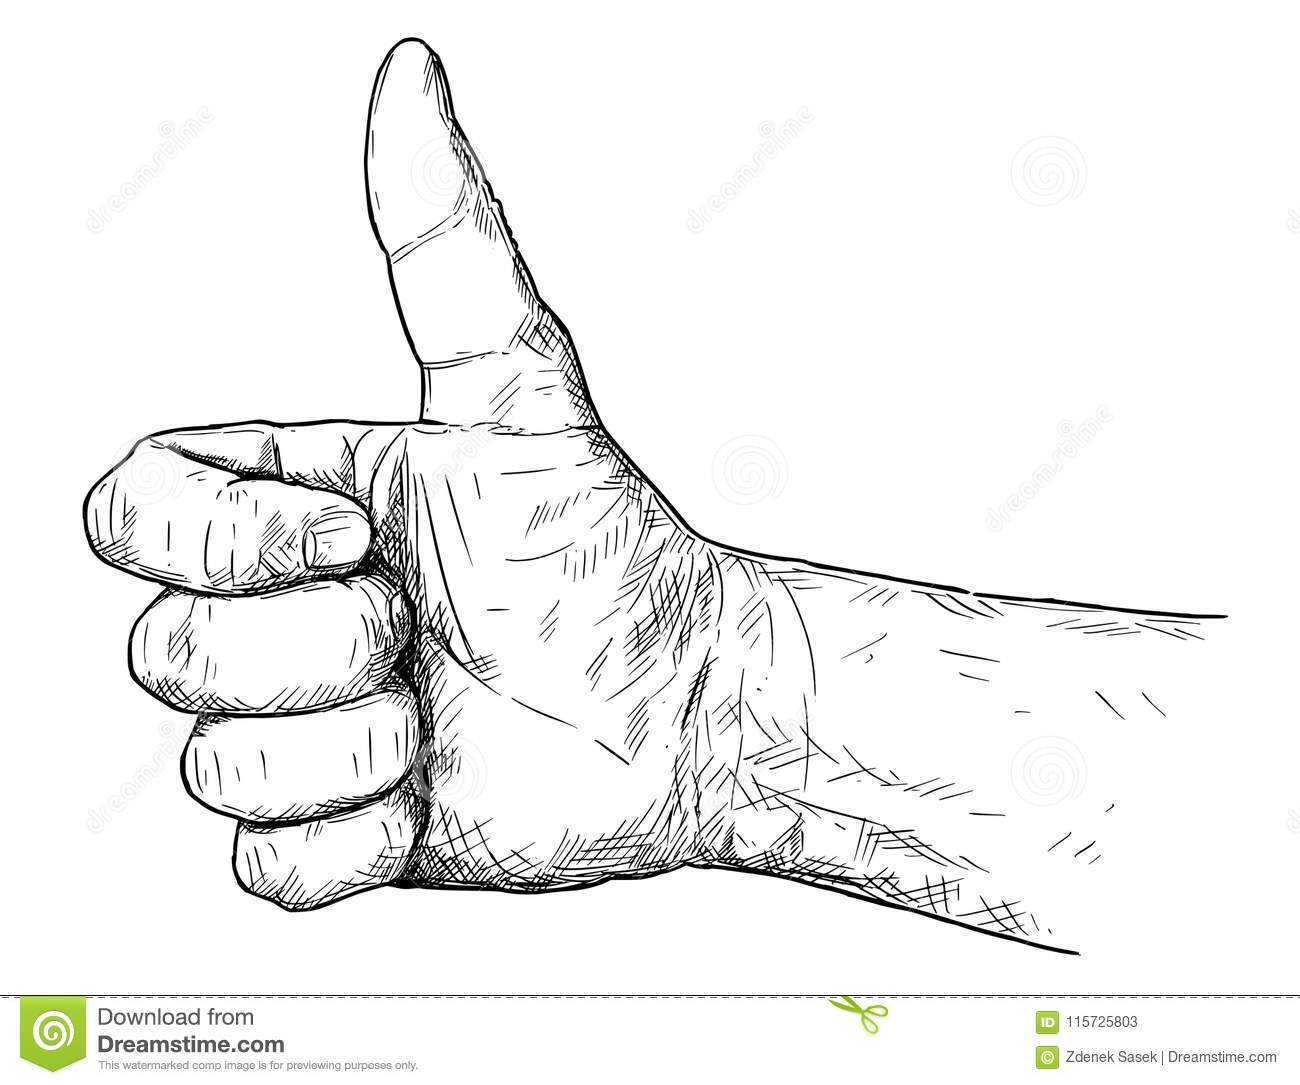 Artistic thumbs up